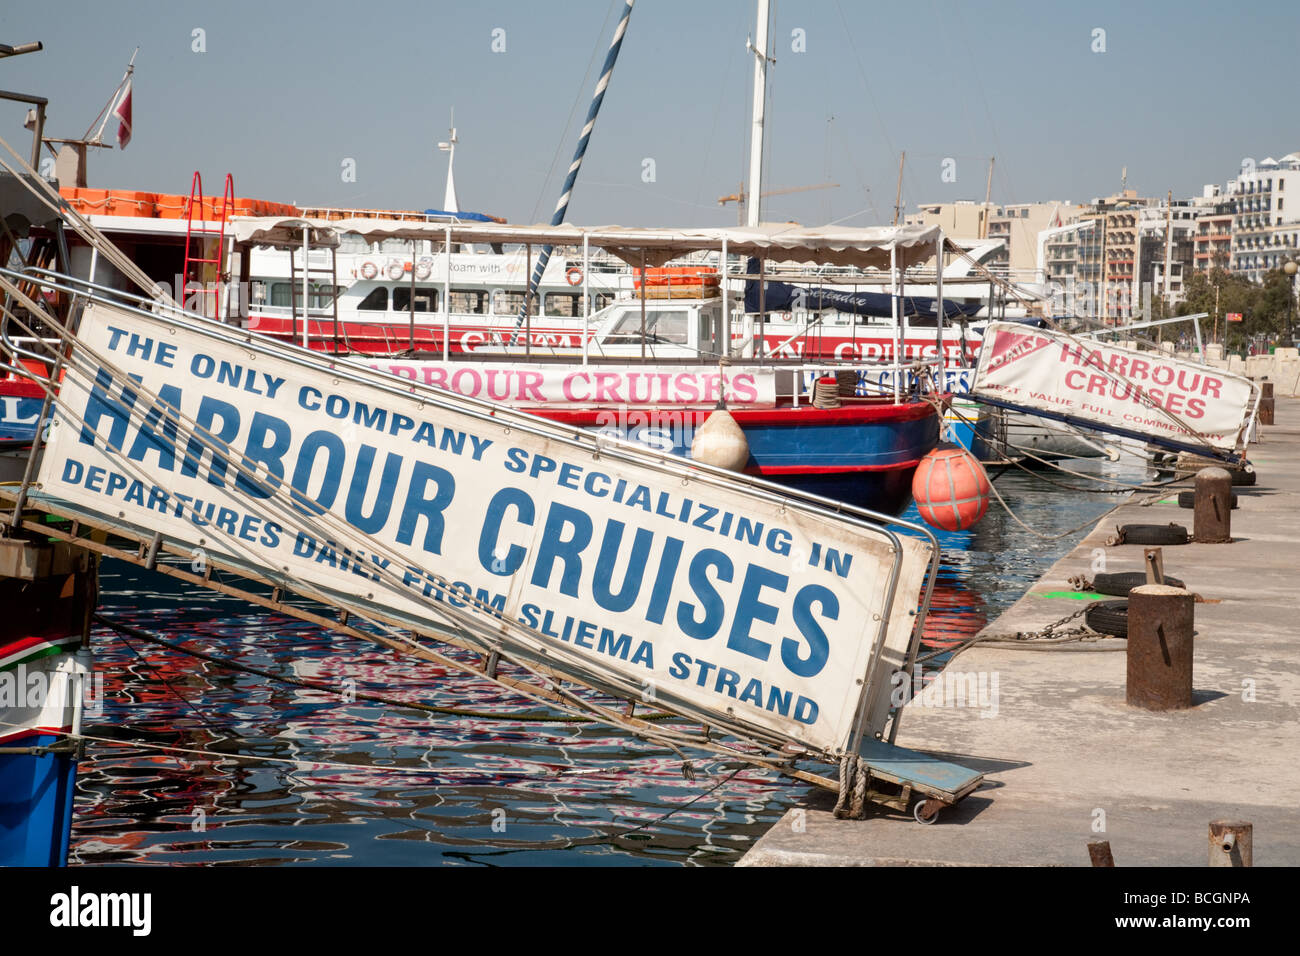 Signs and adverts for cruises, The seafront, Sliema, Malta - Stock Image